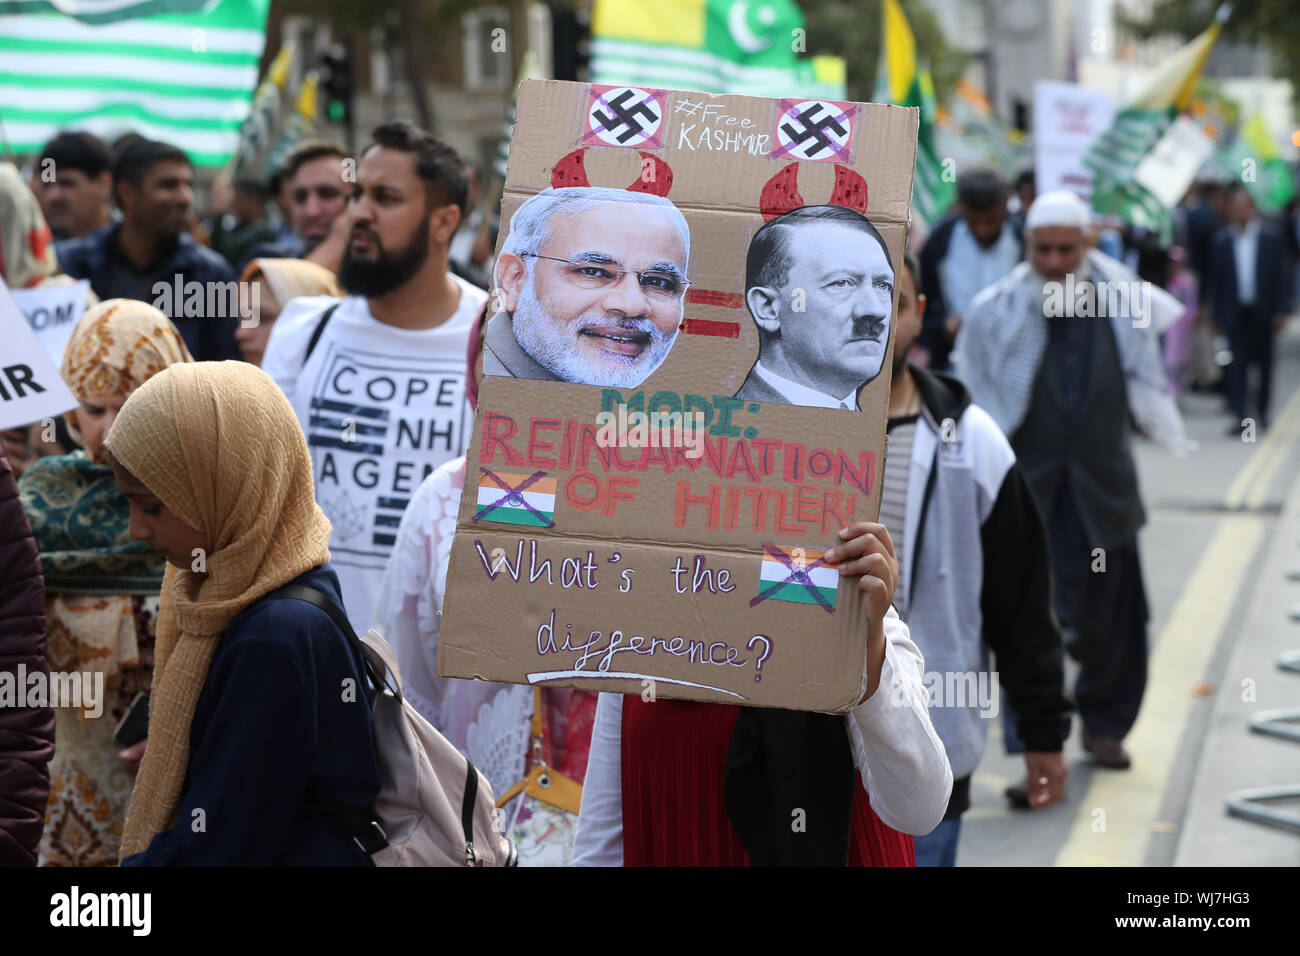 Pro-Kashmiri independence campaigners walk along Whitehall in London, over the issue of India revoking a Article 370, a law which had given the disputed state of Kashmir semi independence via a certain amount of autonomy. Stock Photo